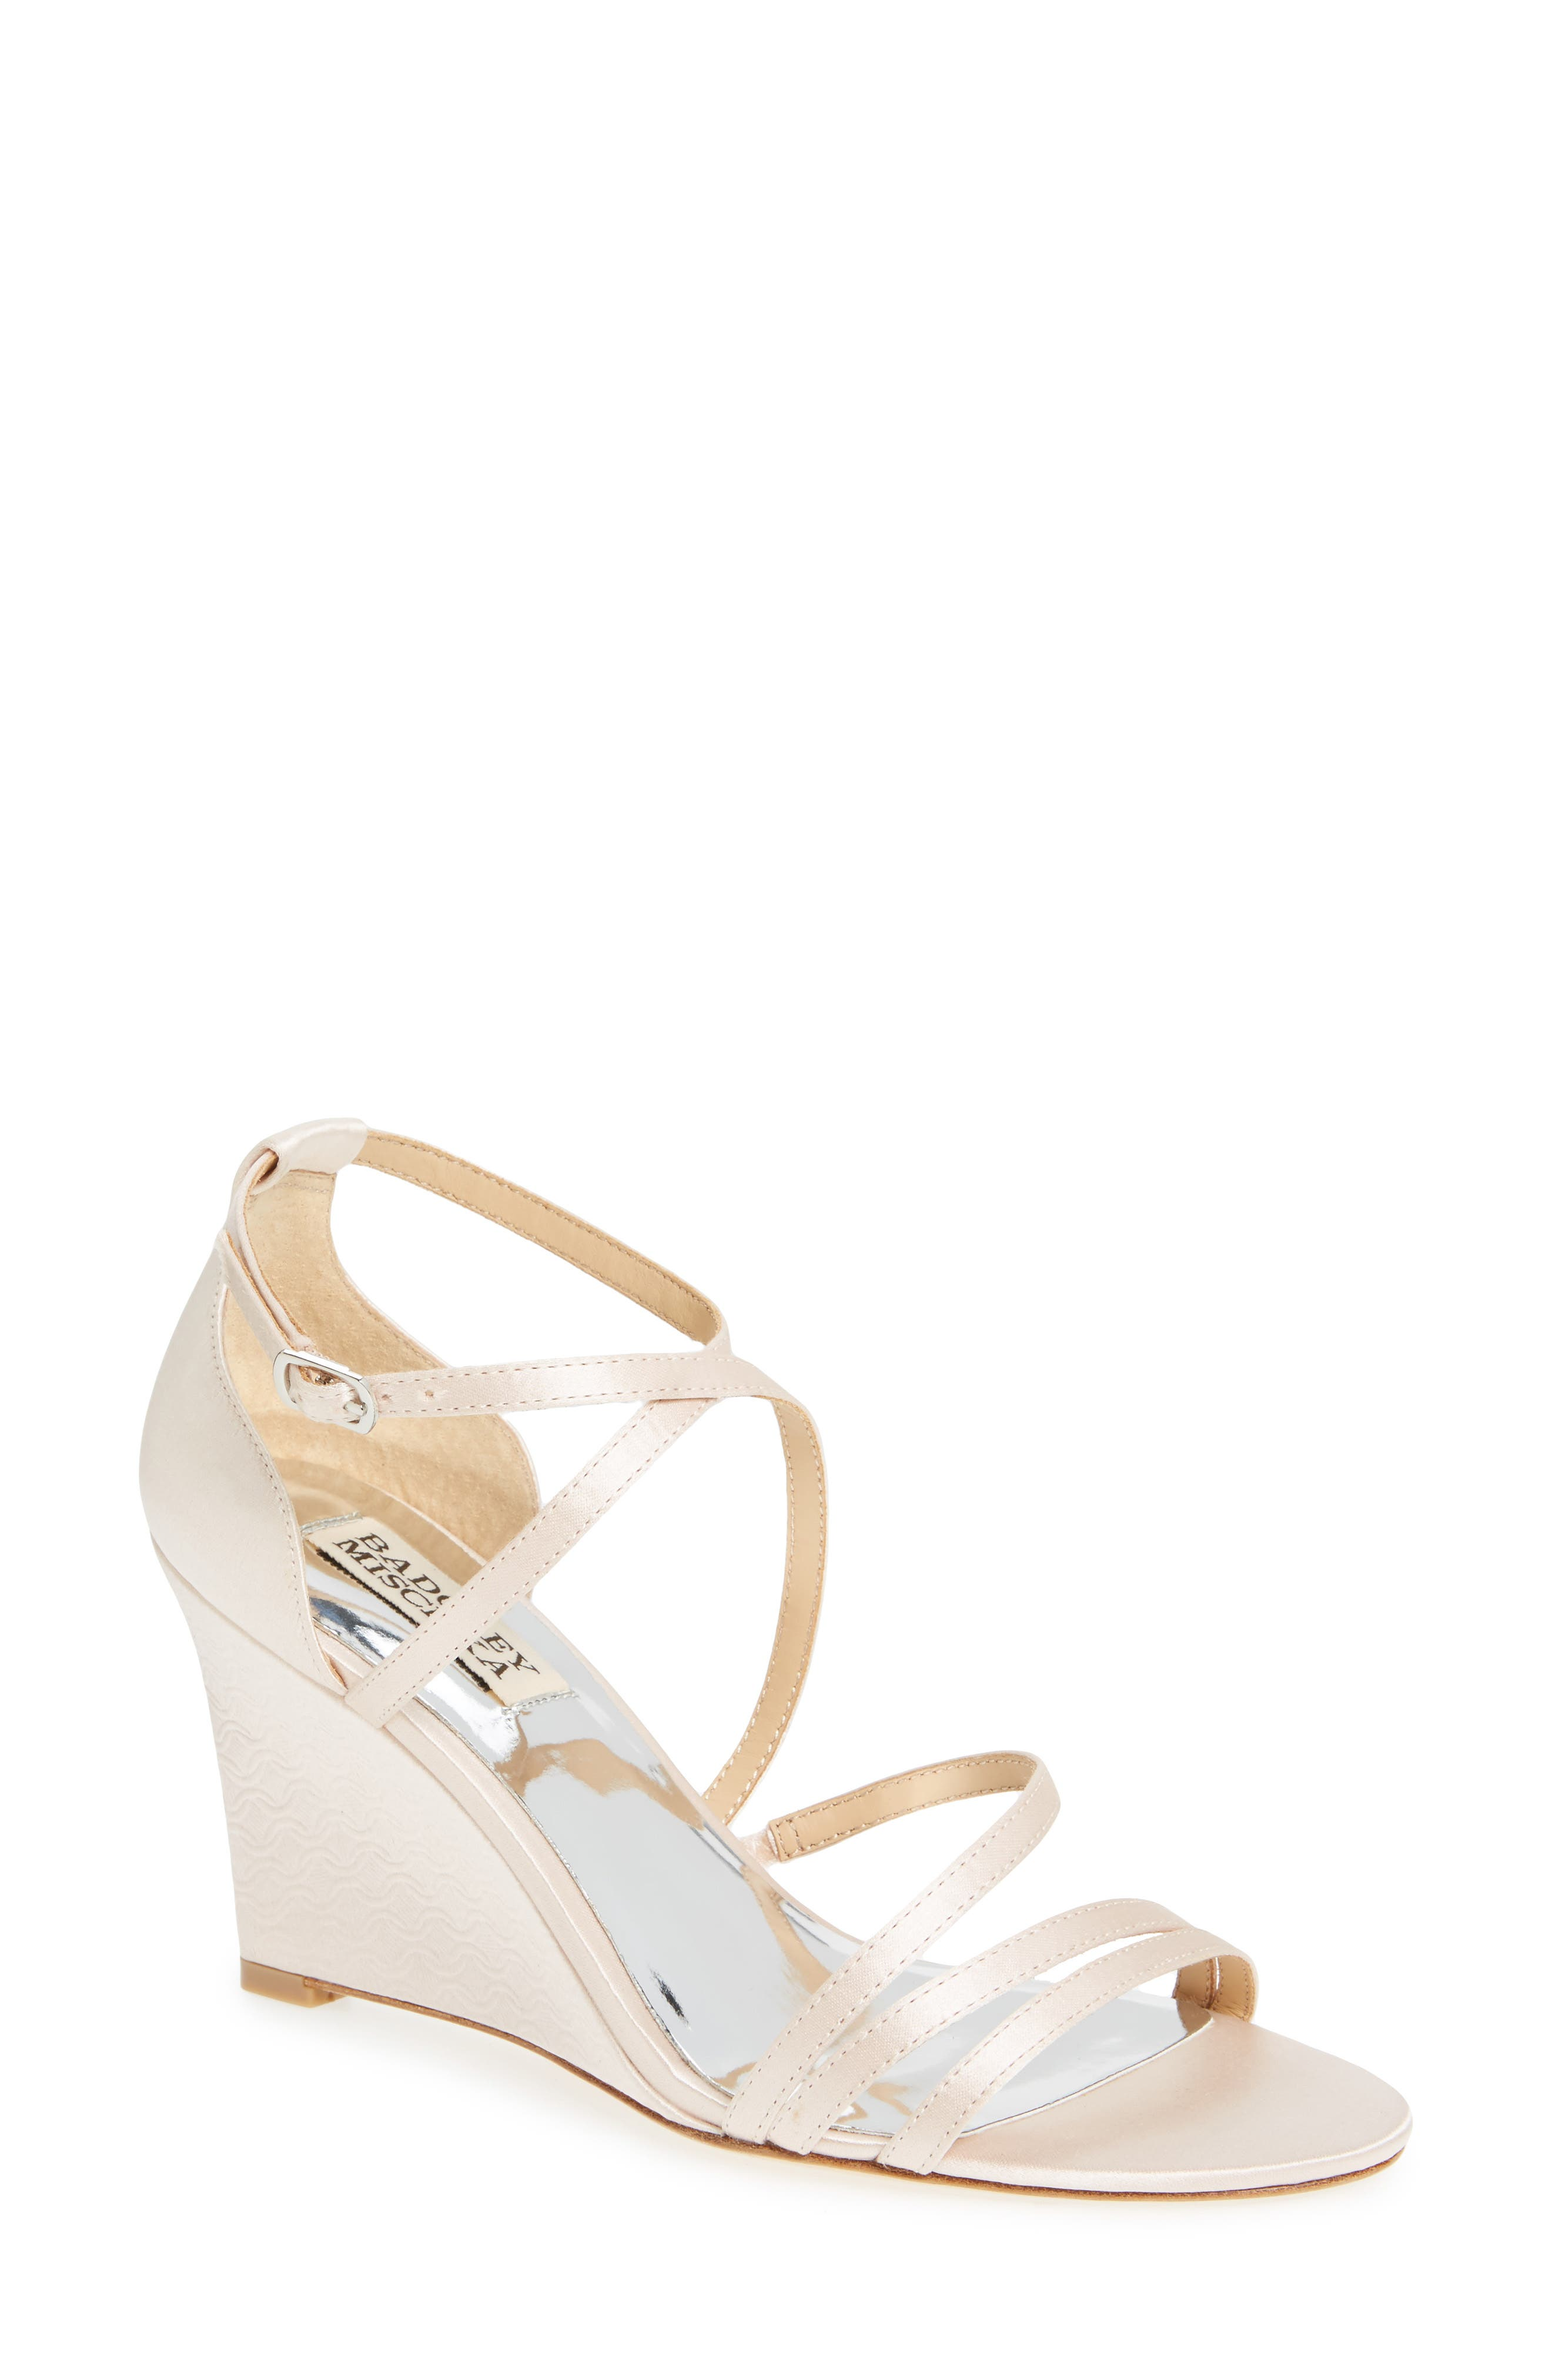 Bonanza Strappy Wedge Sandal,                         Main,                         color, Light Pink Satin